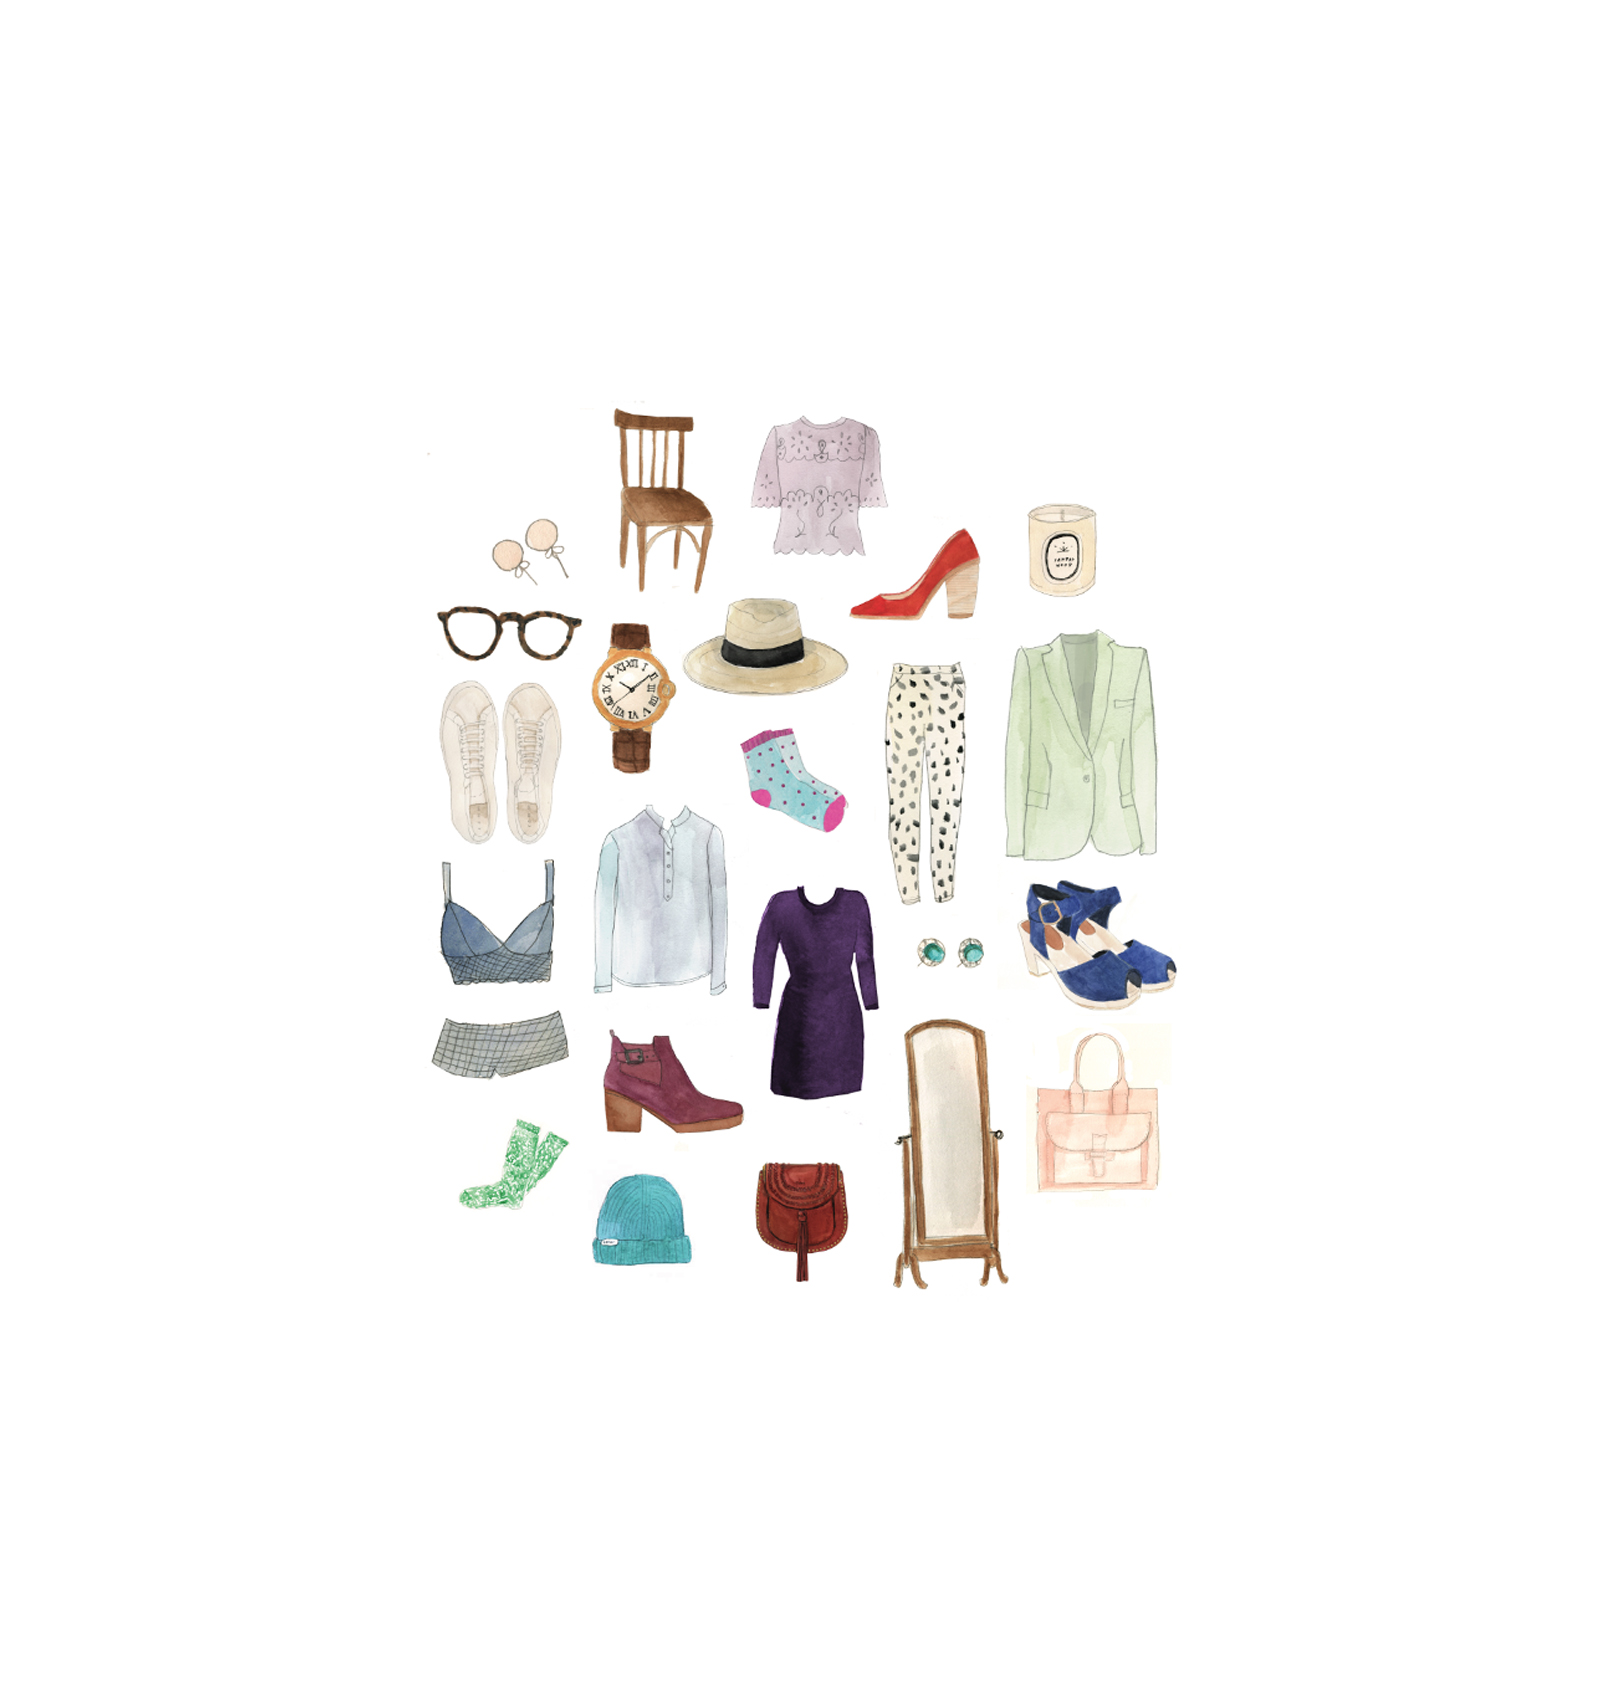 Illustration: contents of closet